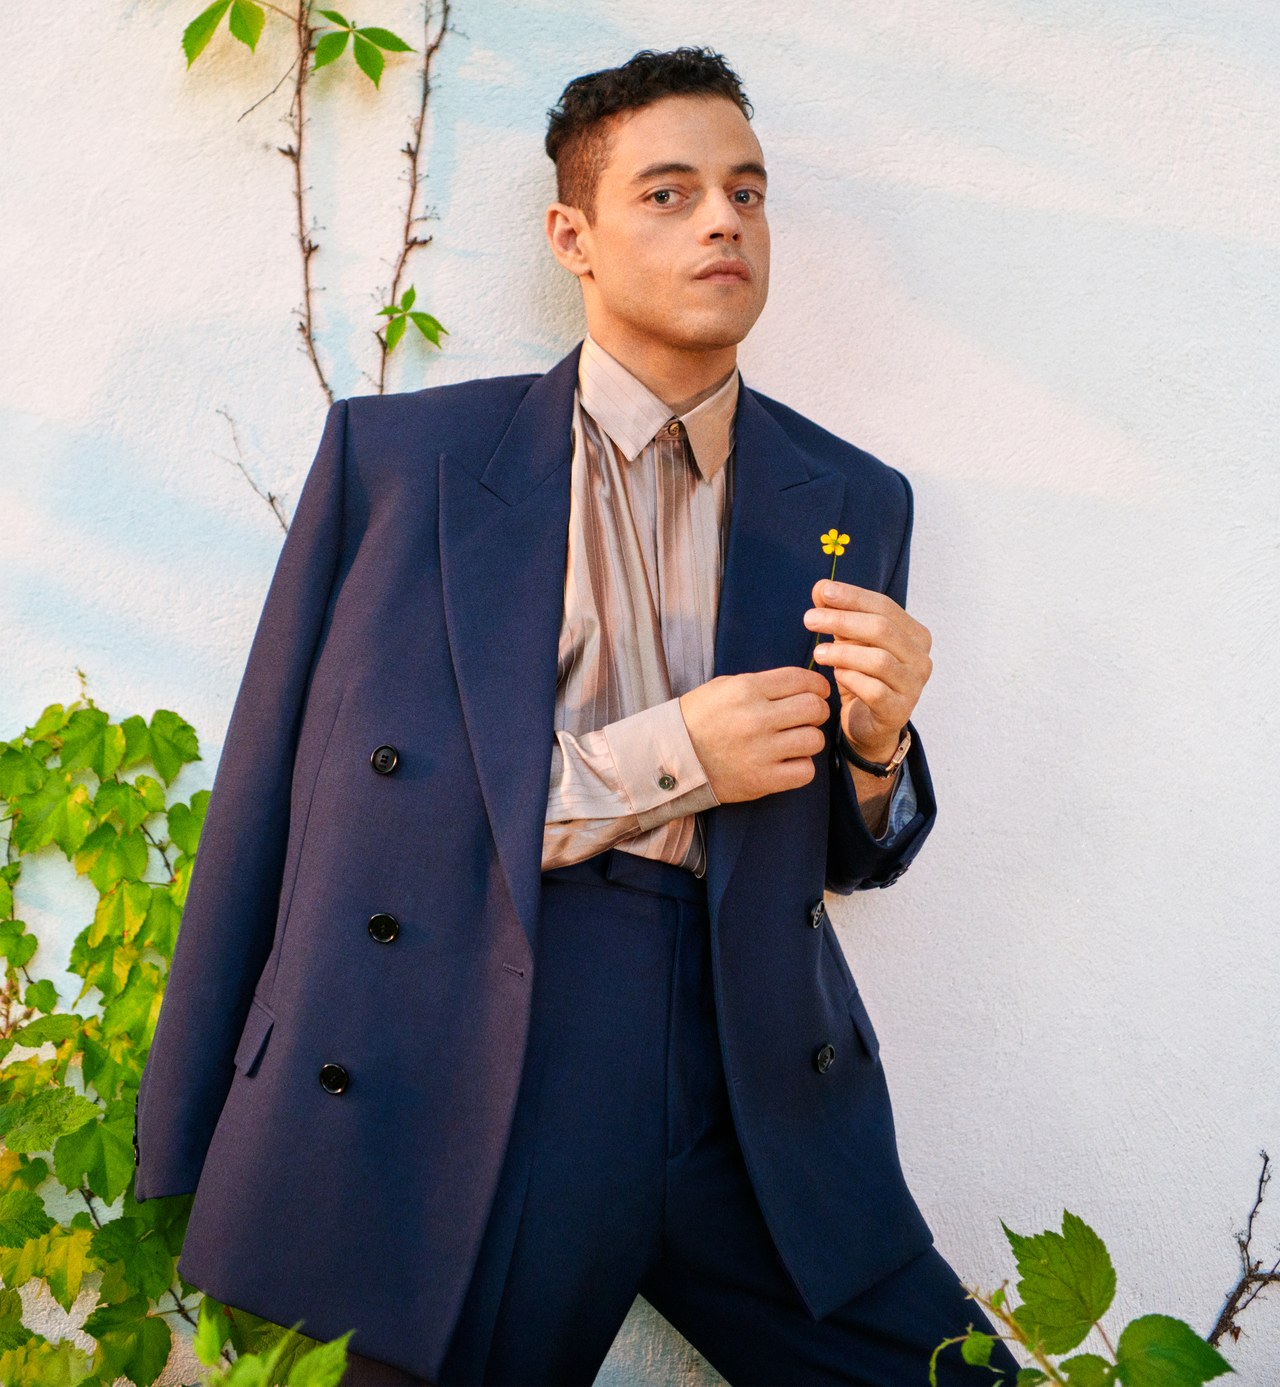 rami-malek-cover-gq-september-2019-01-lede.jpg